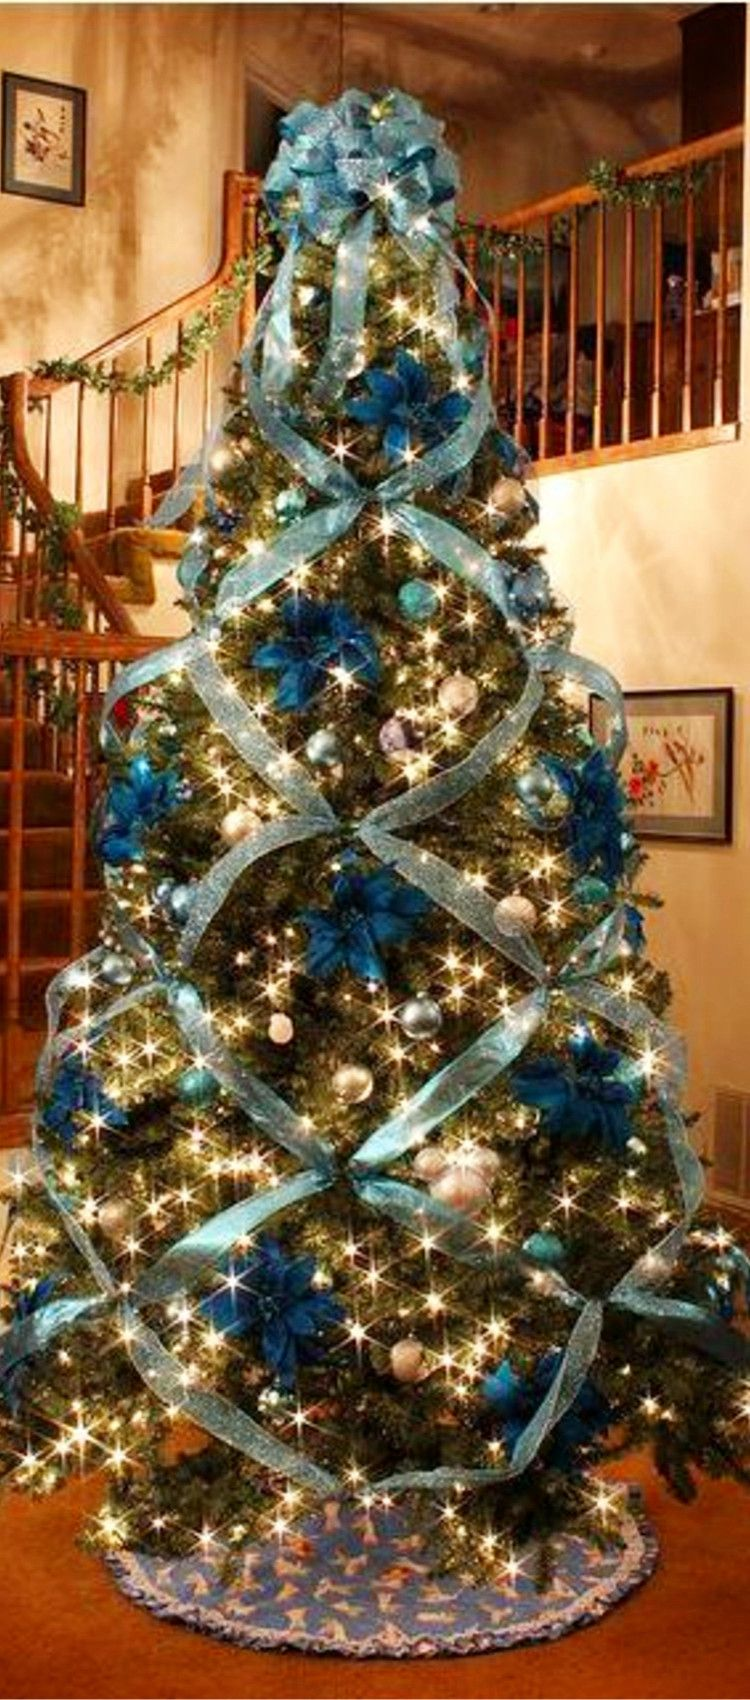 Christmas Trees Fake Christmas Tree Decorating Ideas Pinteresting Finds White Christmas Tree Decorations Amazing Christmas Trees Beautiful Christmas Trees